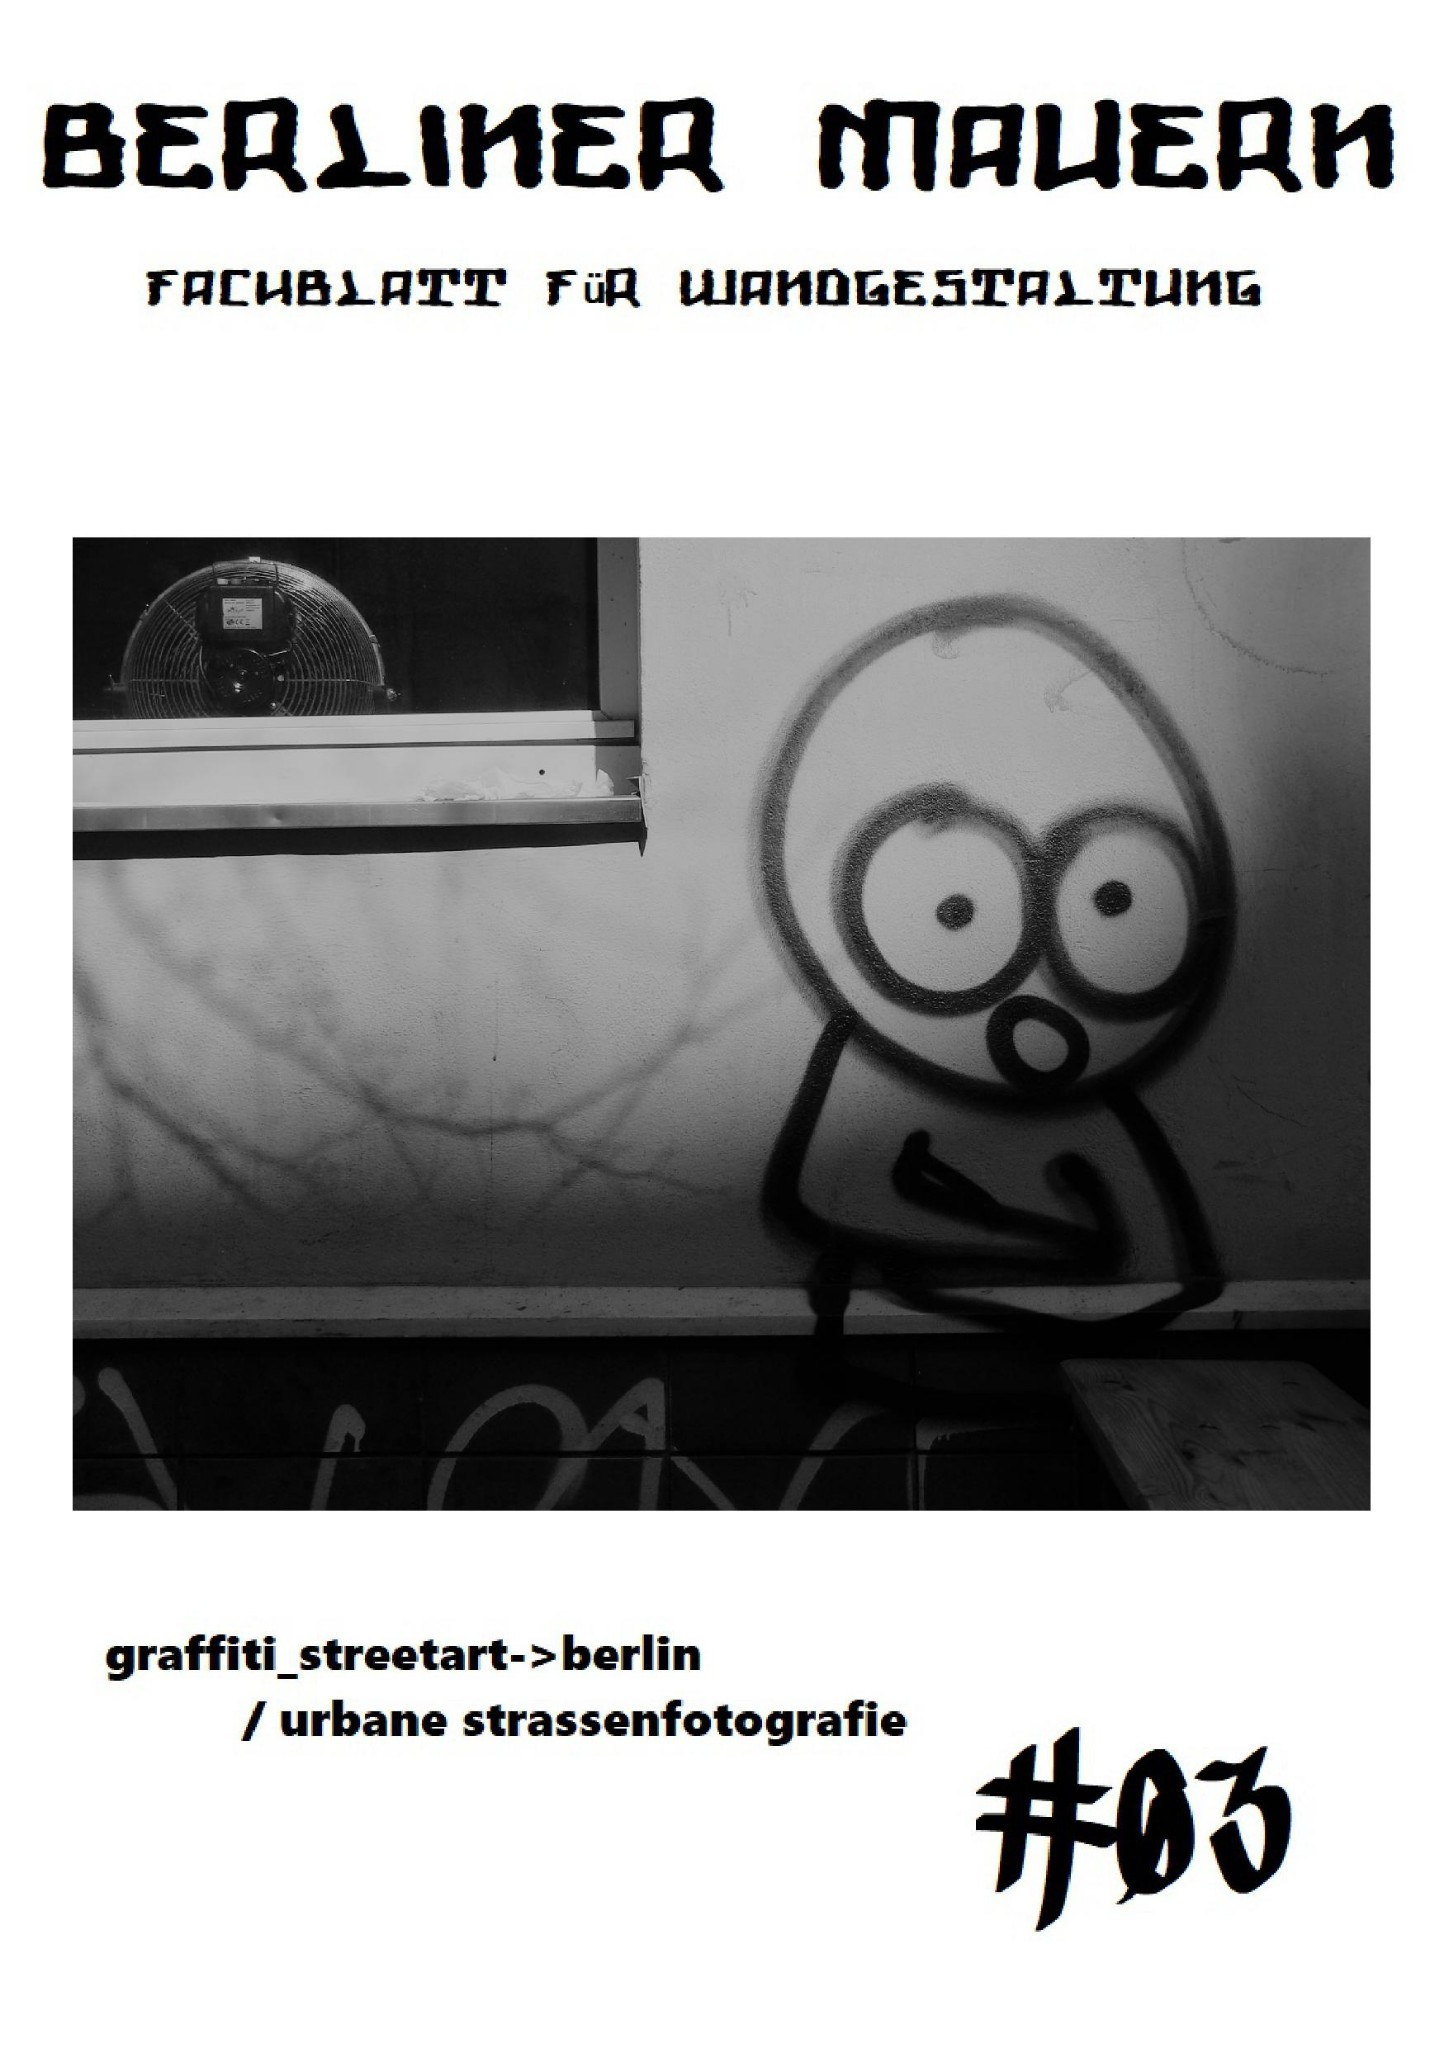 Berliner Mauern 03 | DIY Zine | Graffiti + Street Photography | DIN A5